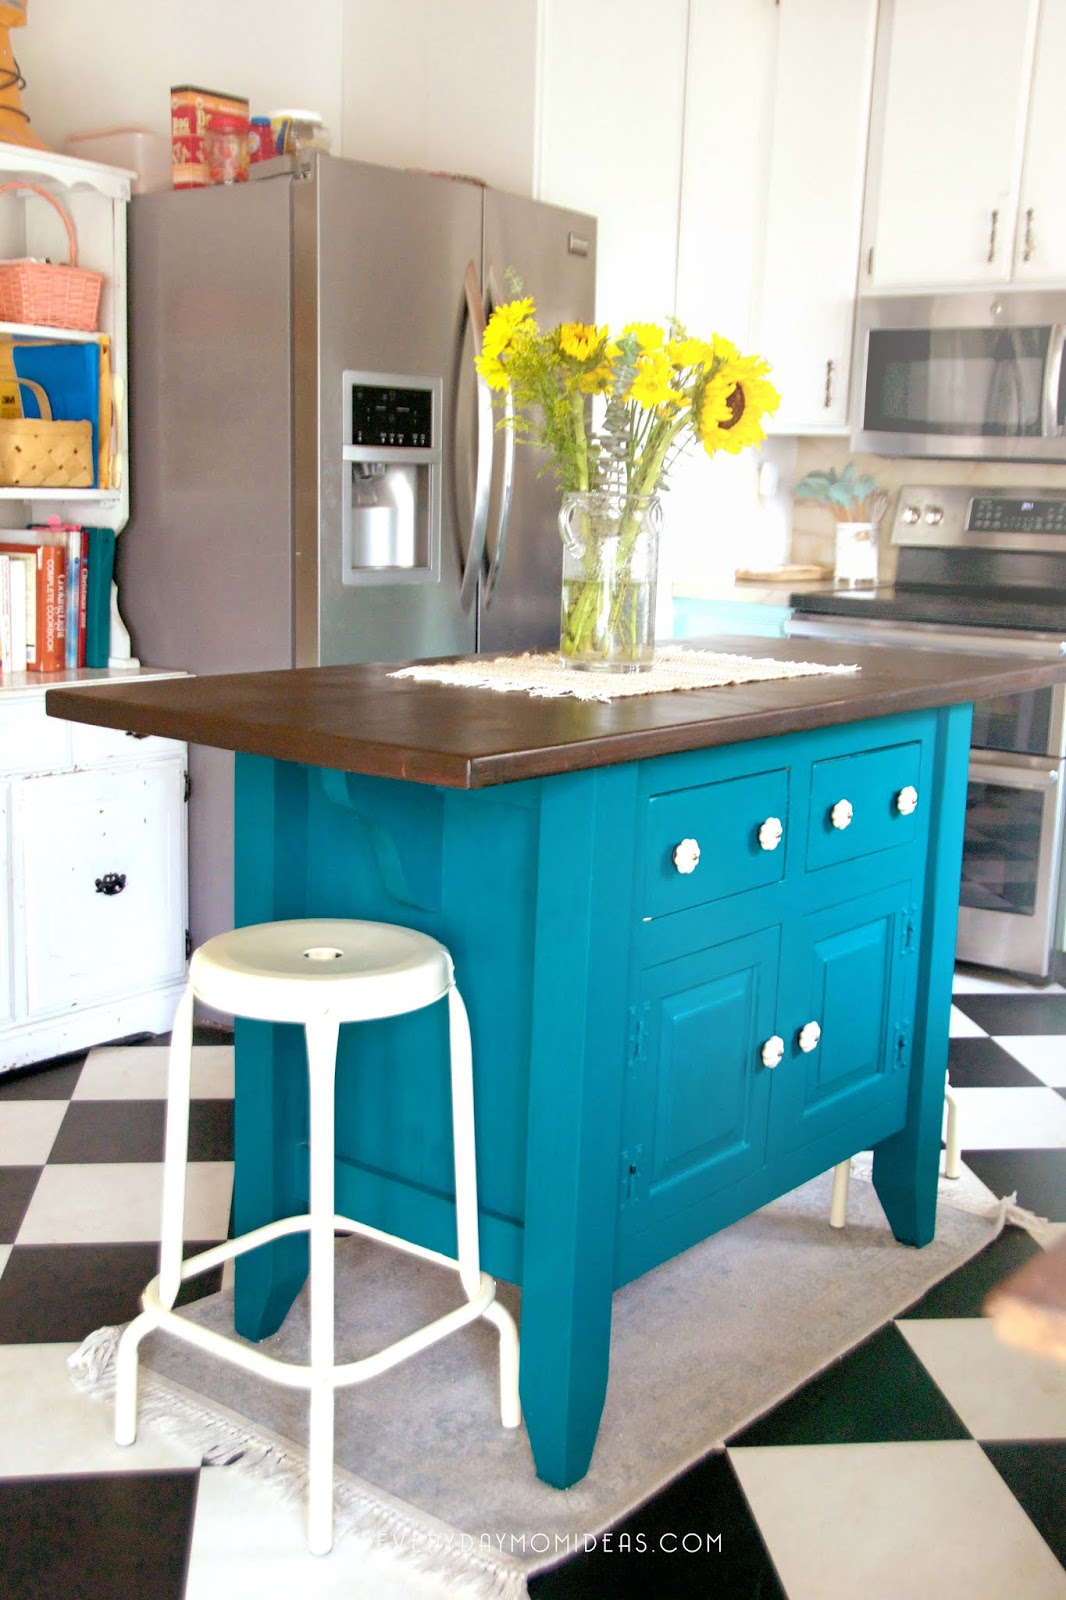 1928 Bungalow Kitchen Island Makeover Reveal - Everyday Mom Ideas